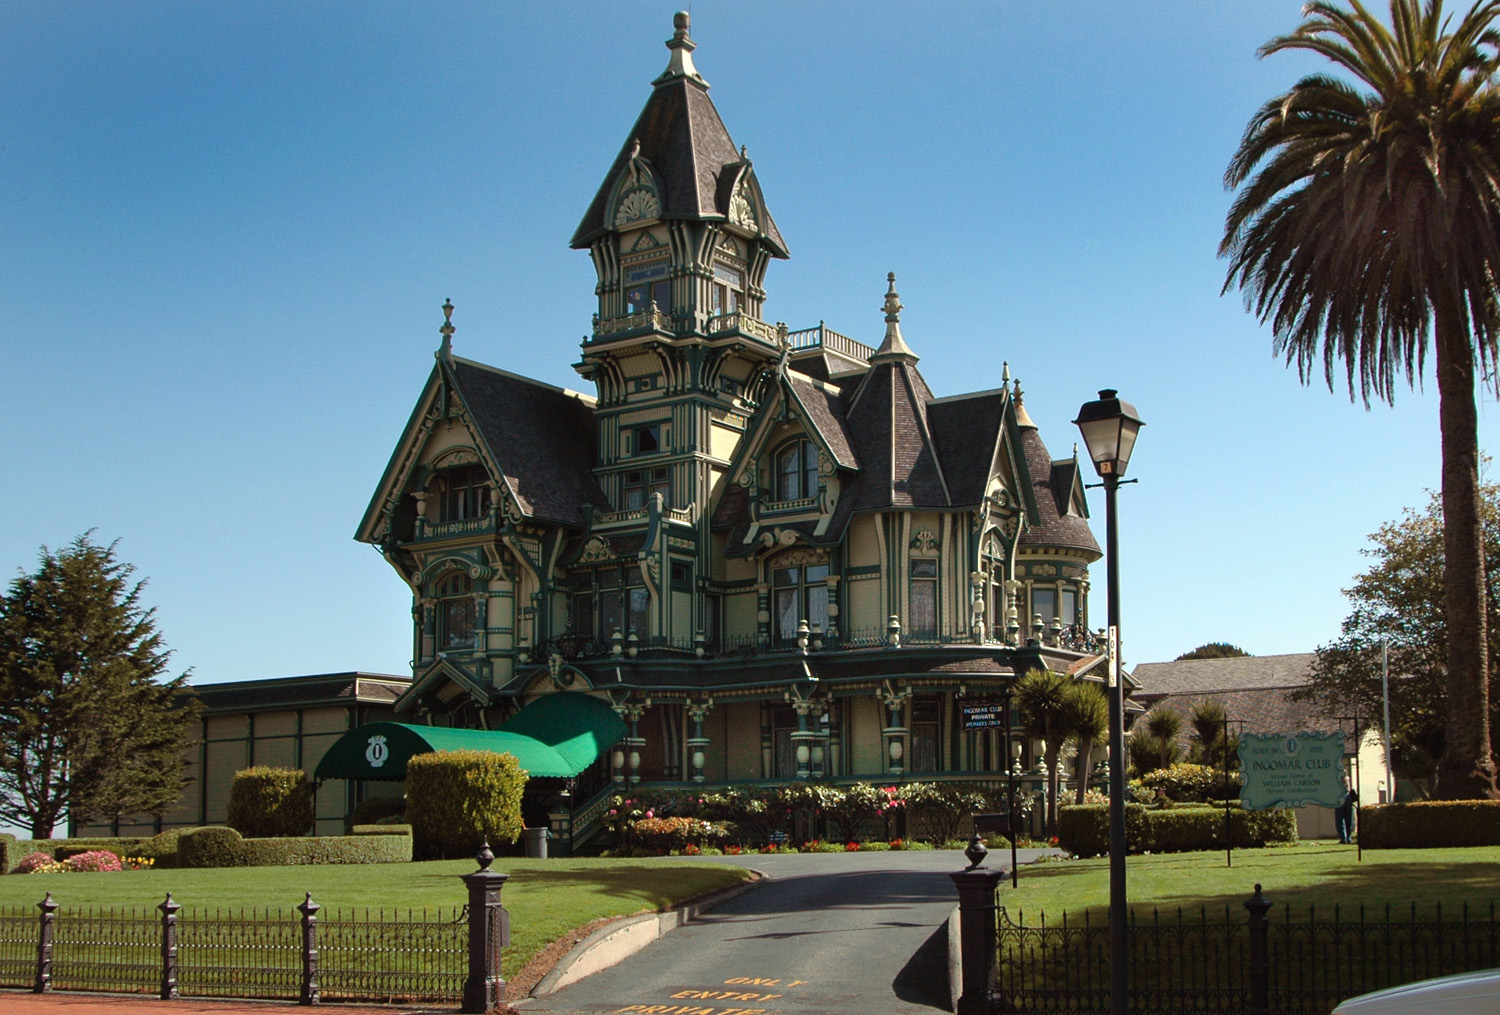 http://upload.wikimedia.org/wikipedia/commons/7/73/Carson_Mansion_Eureka_California.jpg